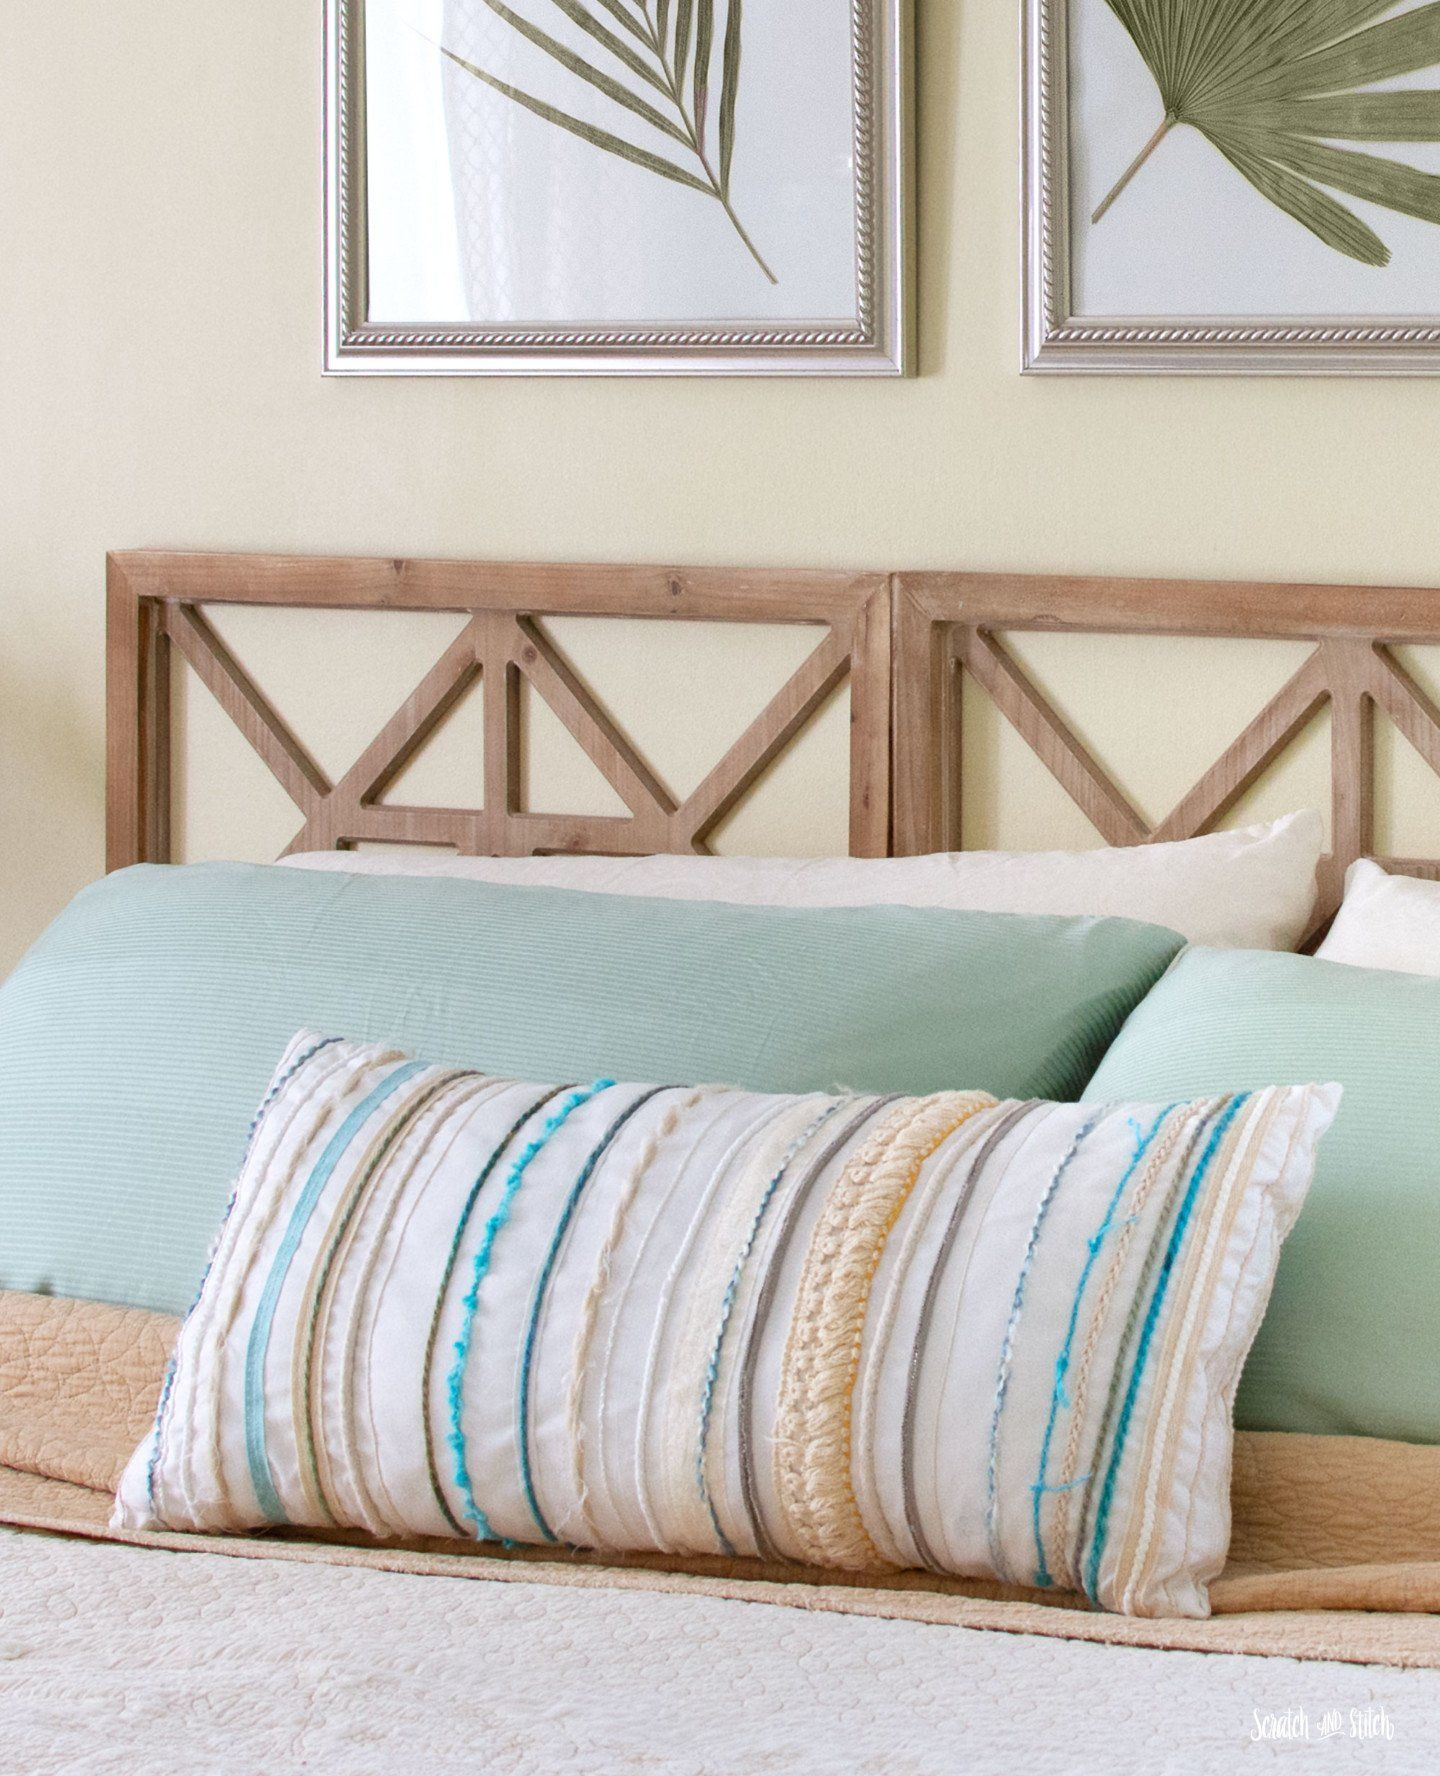 Easy DIY Headboard made from Decorative Wall Panels DIY Throw Pillow Cover - scratchandstitch.com  #DIY #Headboard #made #from #Decorative